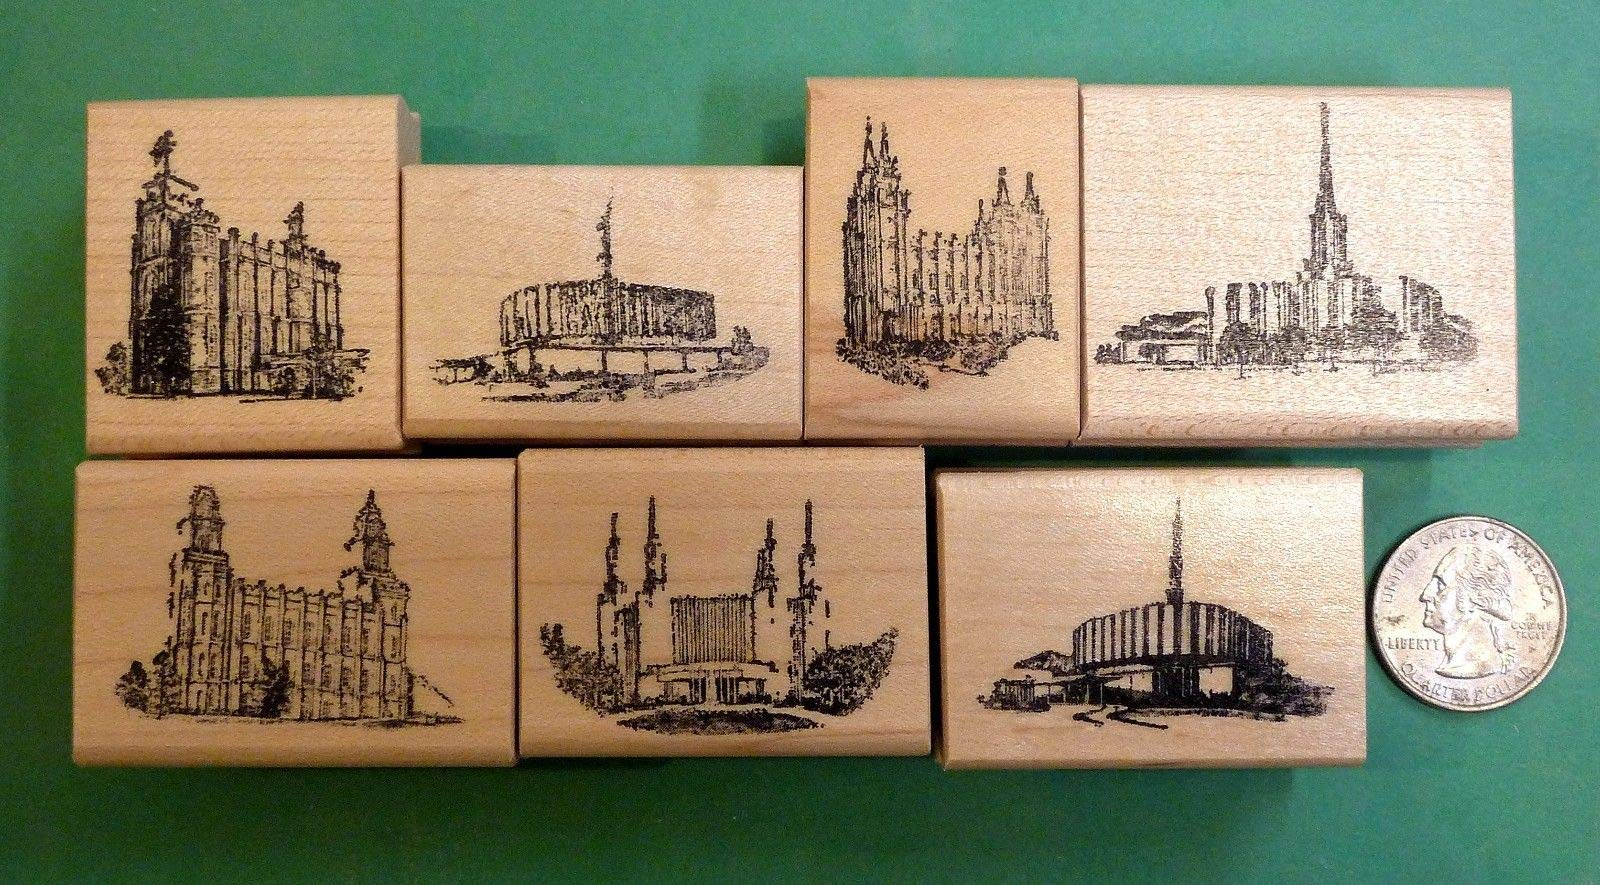 Quality Custom Rubber Stamps Mormon/LDS Temples, Set of (7), Wood Mounted Rubber Stamps Carved Wooden Stamps